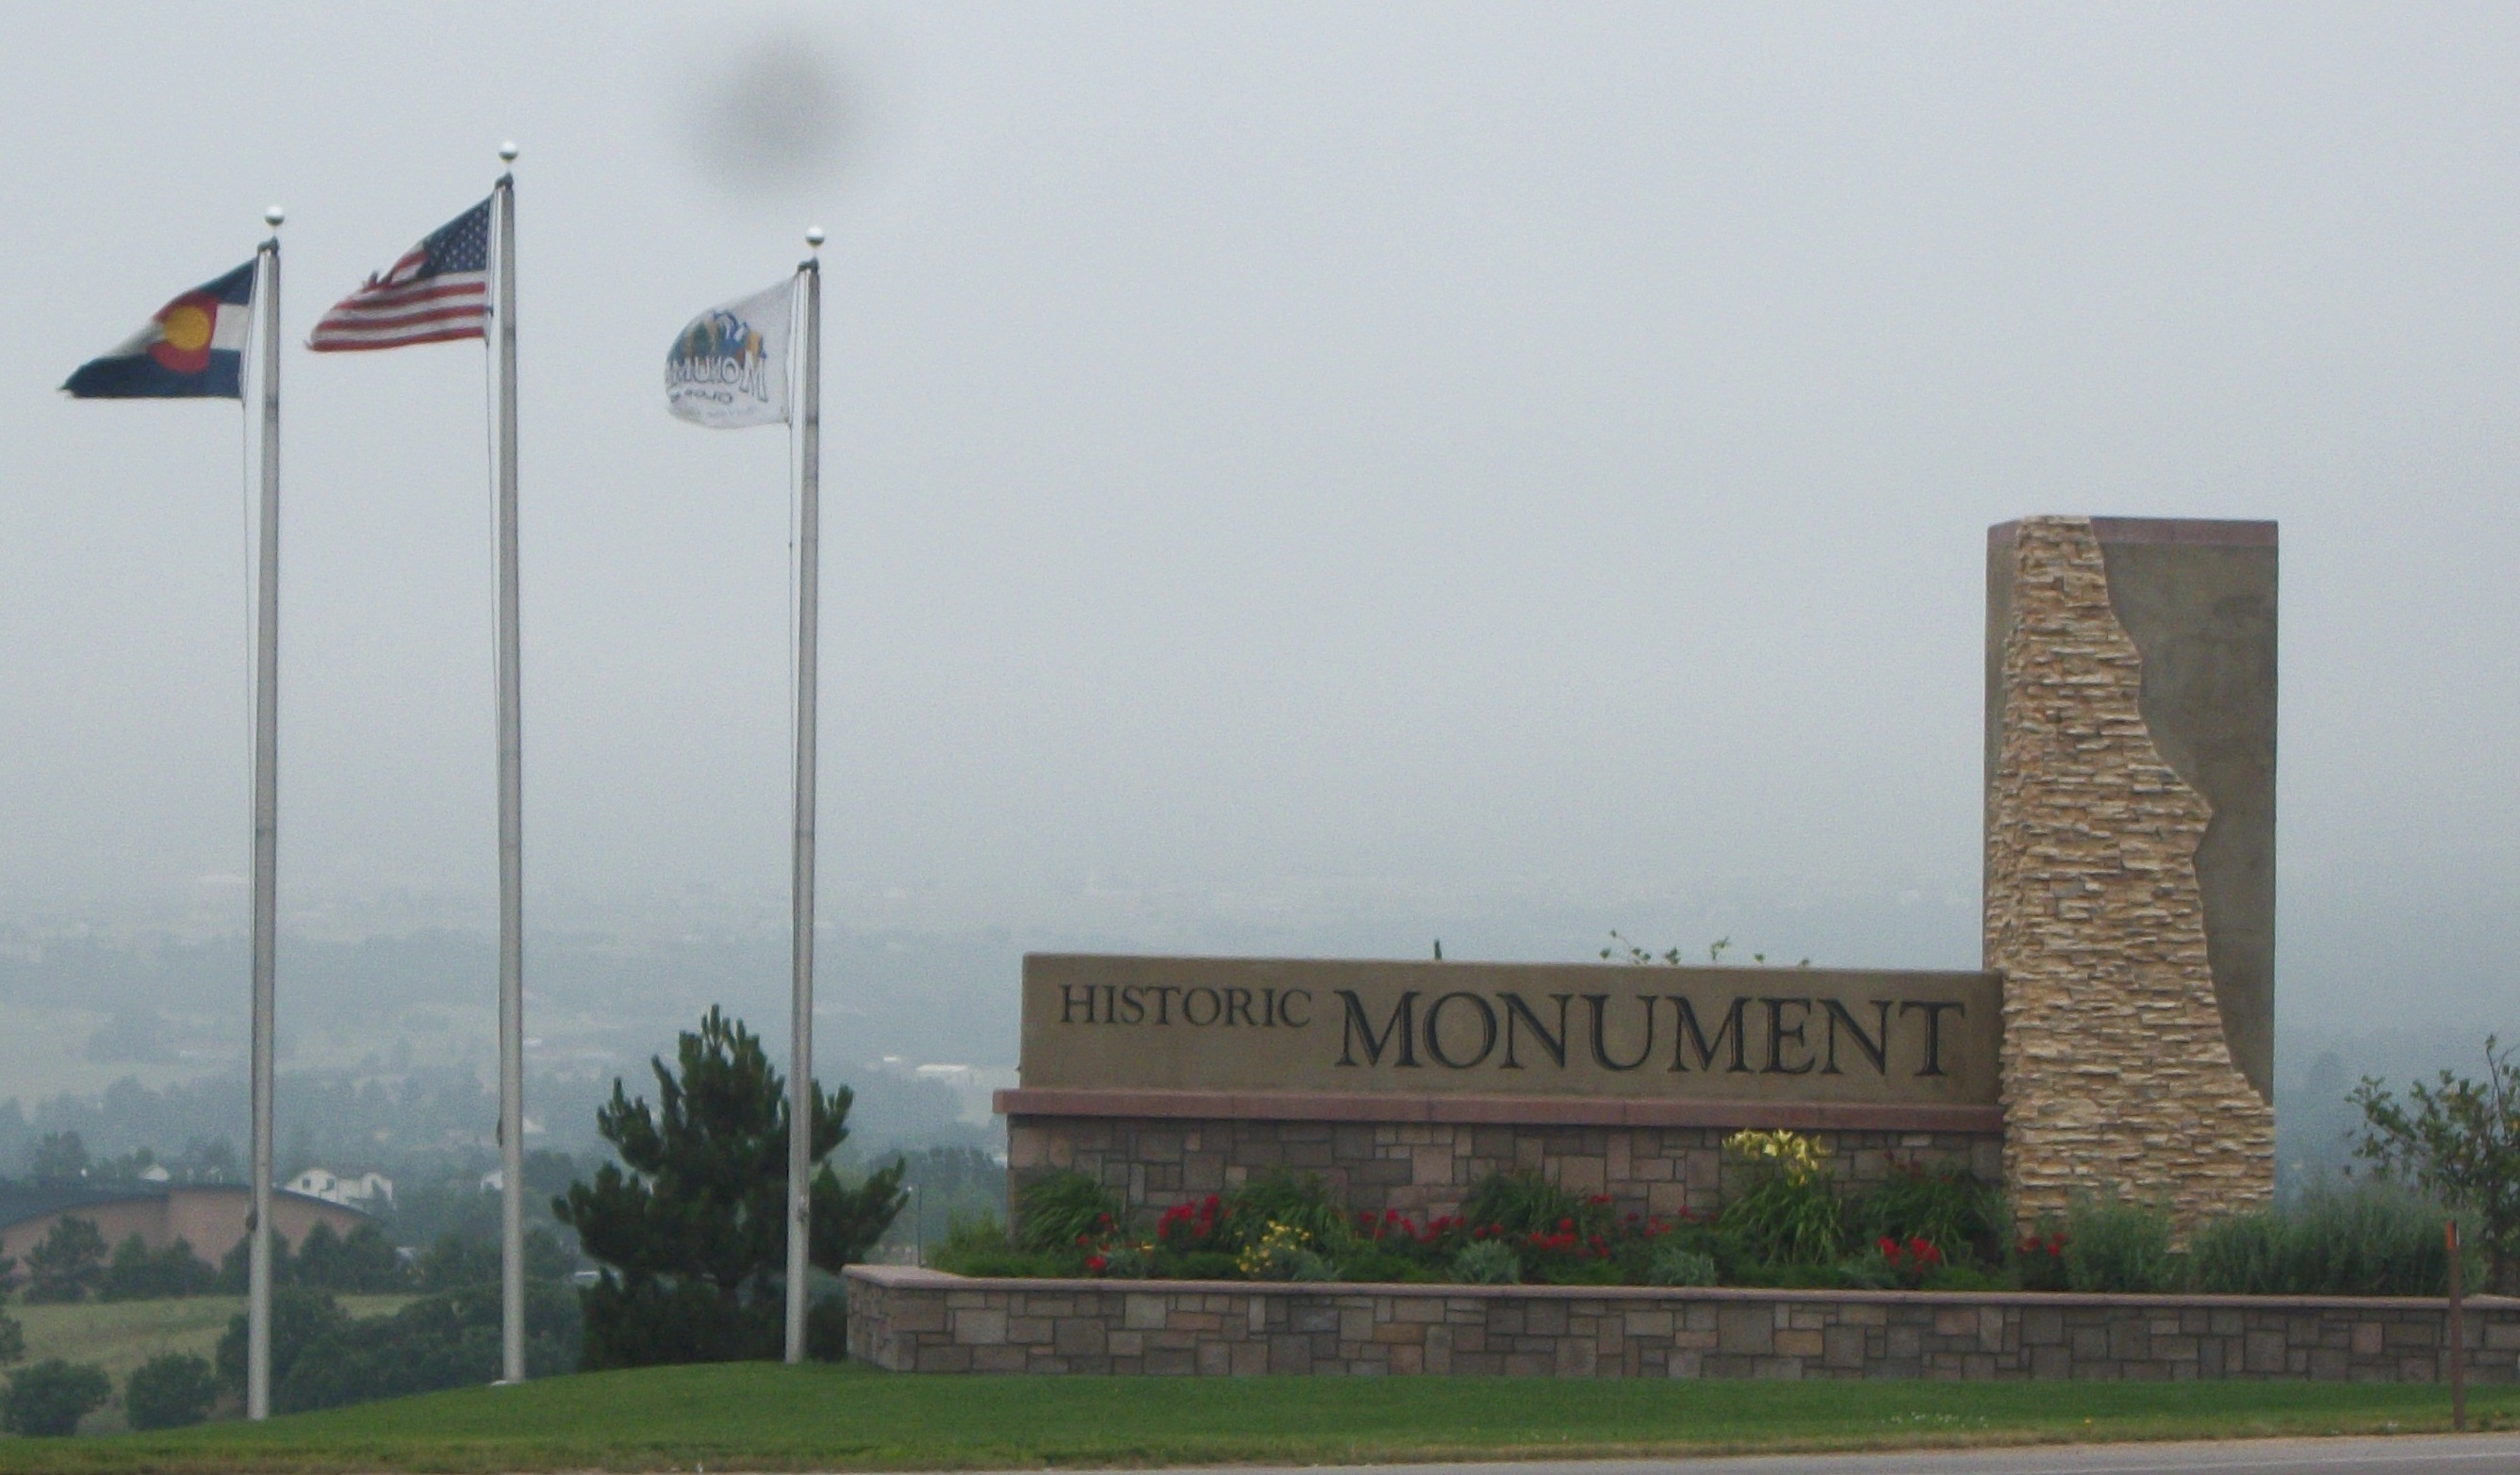 https://assets.sourcemedia.com/09/21/0f31603b451c89b5356f57a12dba/monument-colo-welcome-sign.jpg